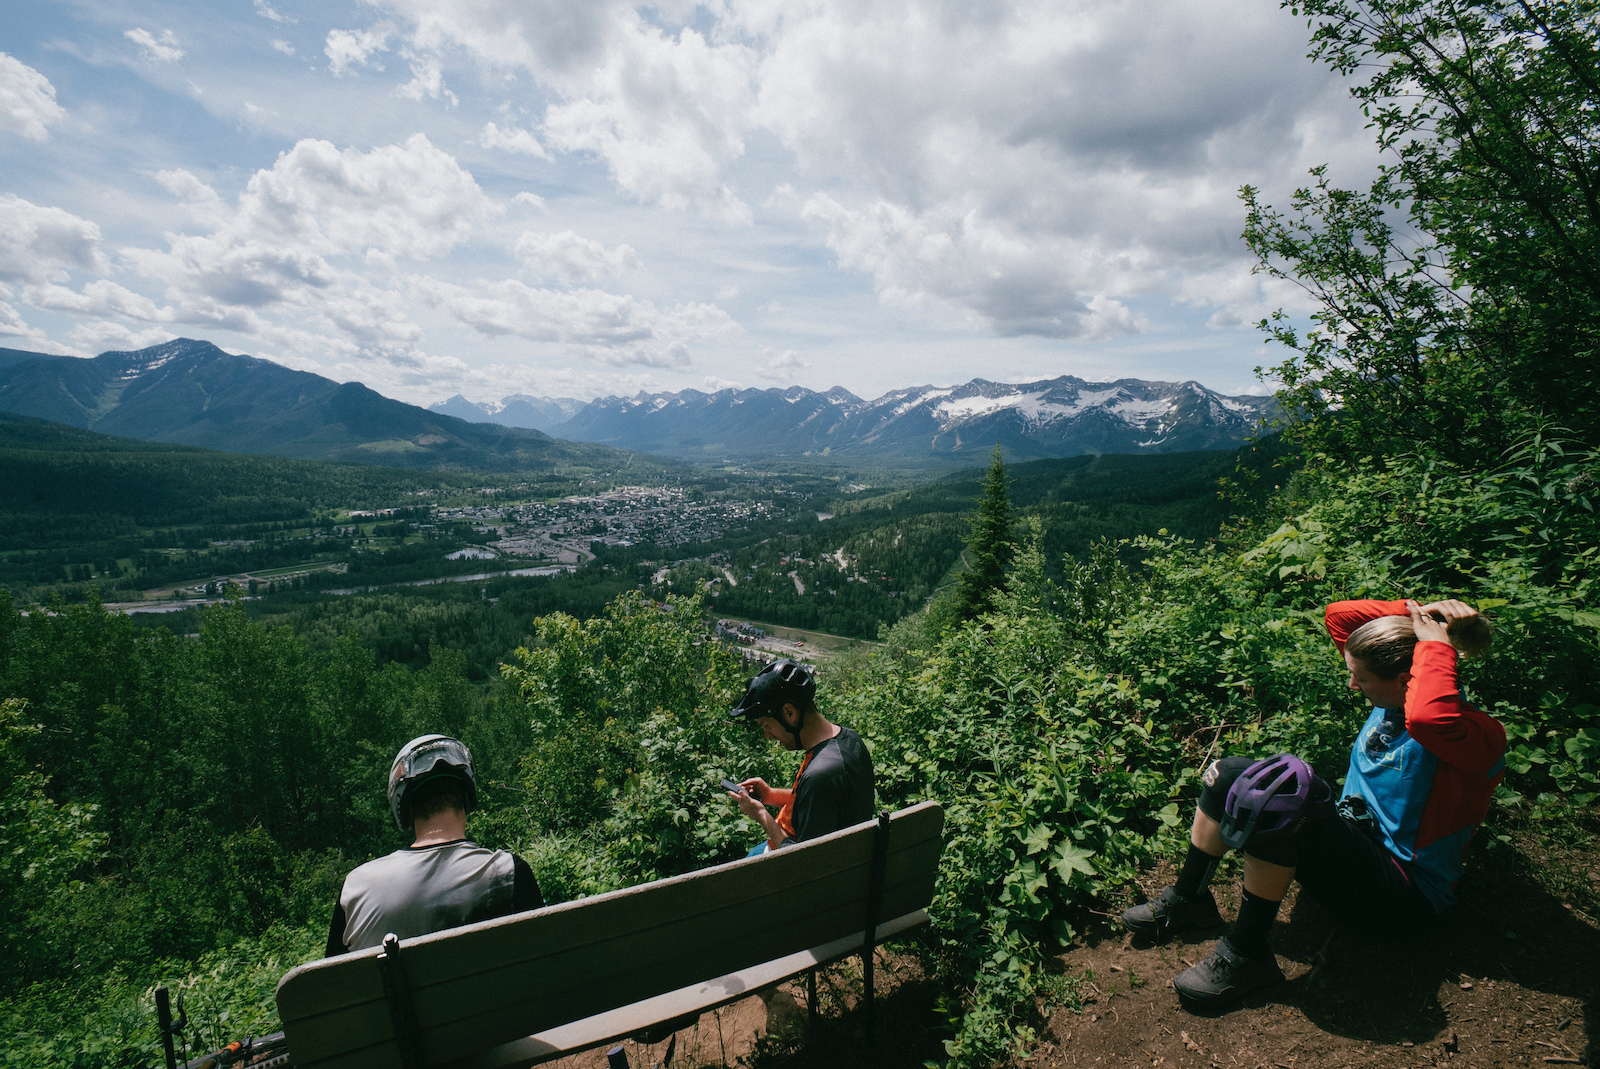 Make sure you climb a mountain in Fernie the views are spectacular P.S. Gram It